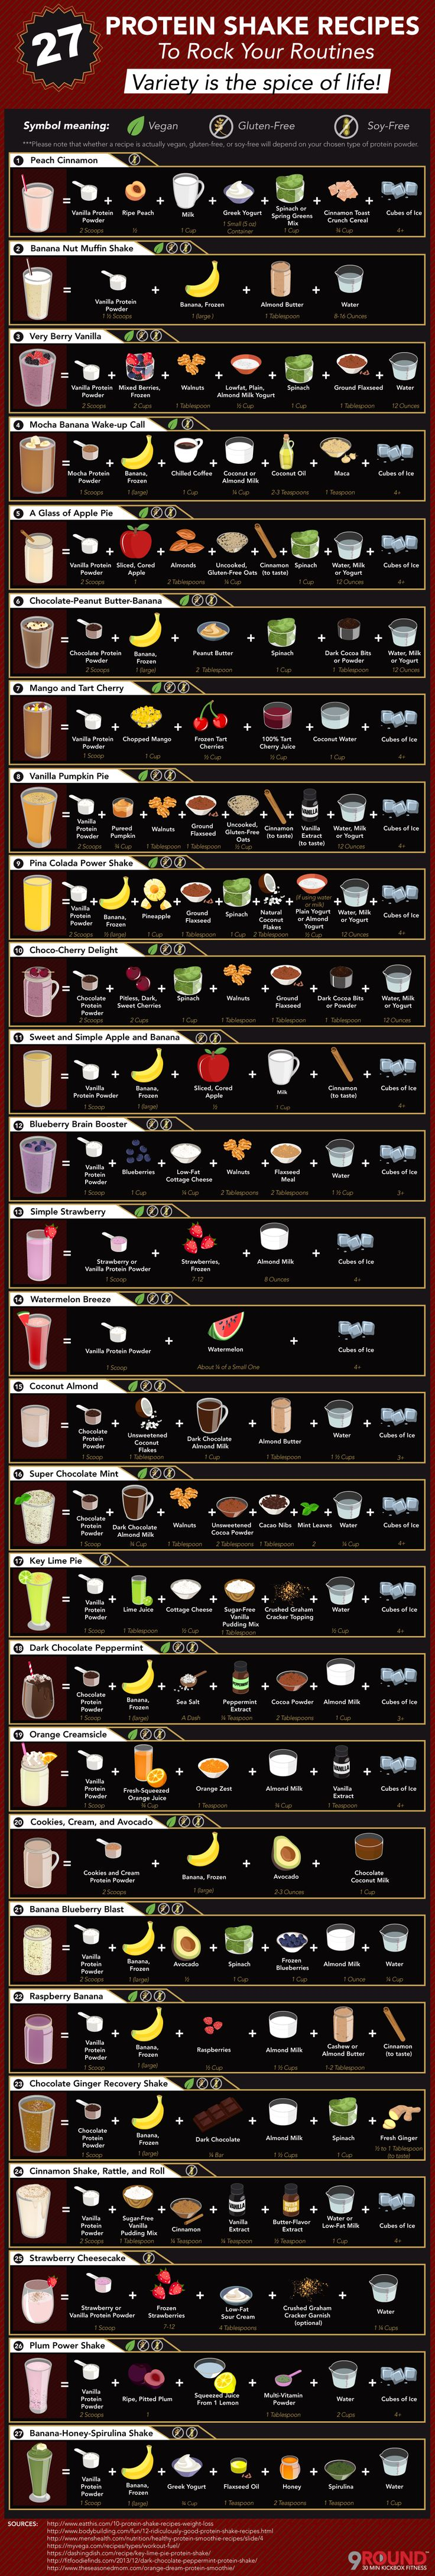 27 Protein Shake Recipes to Rock Your Routines #Infographic #Food #Recipes                                                                                                                                                     More